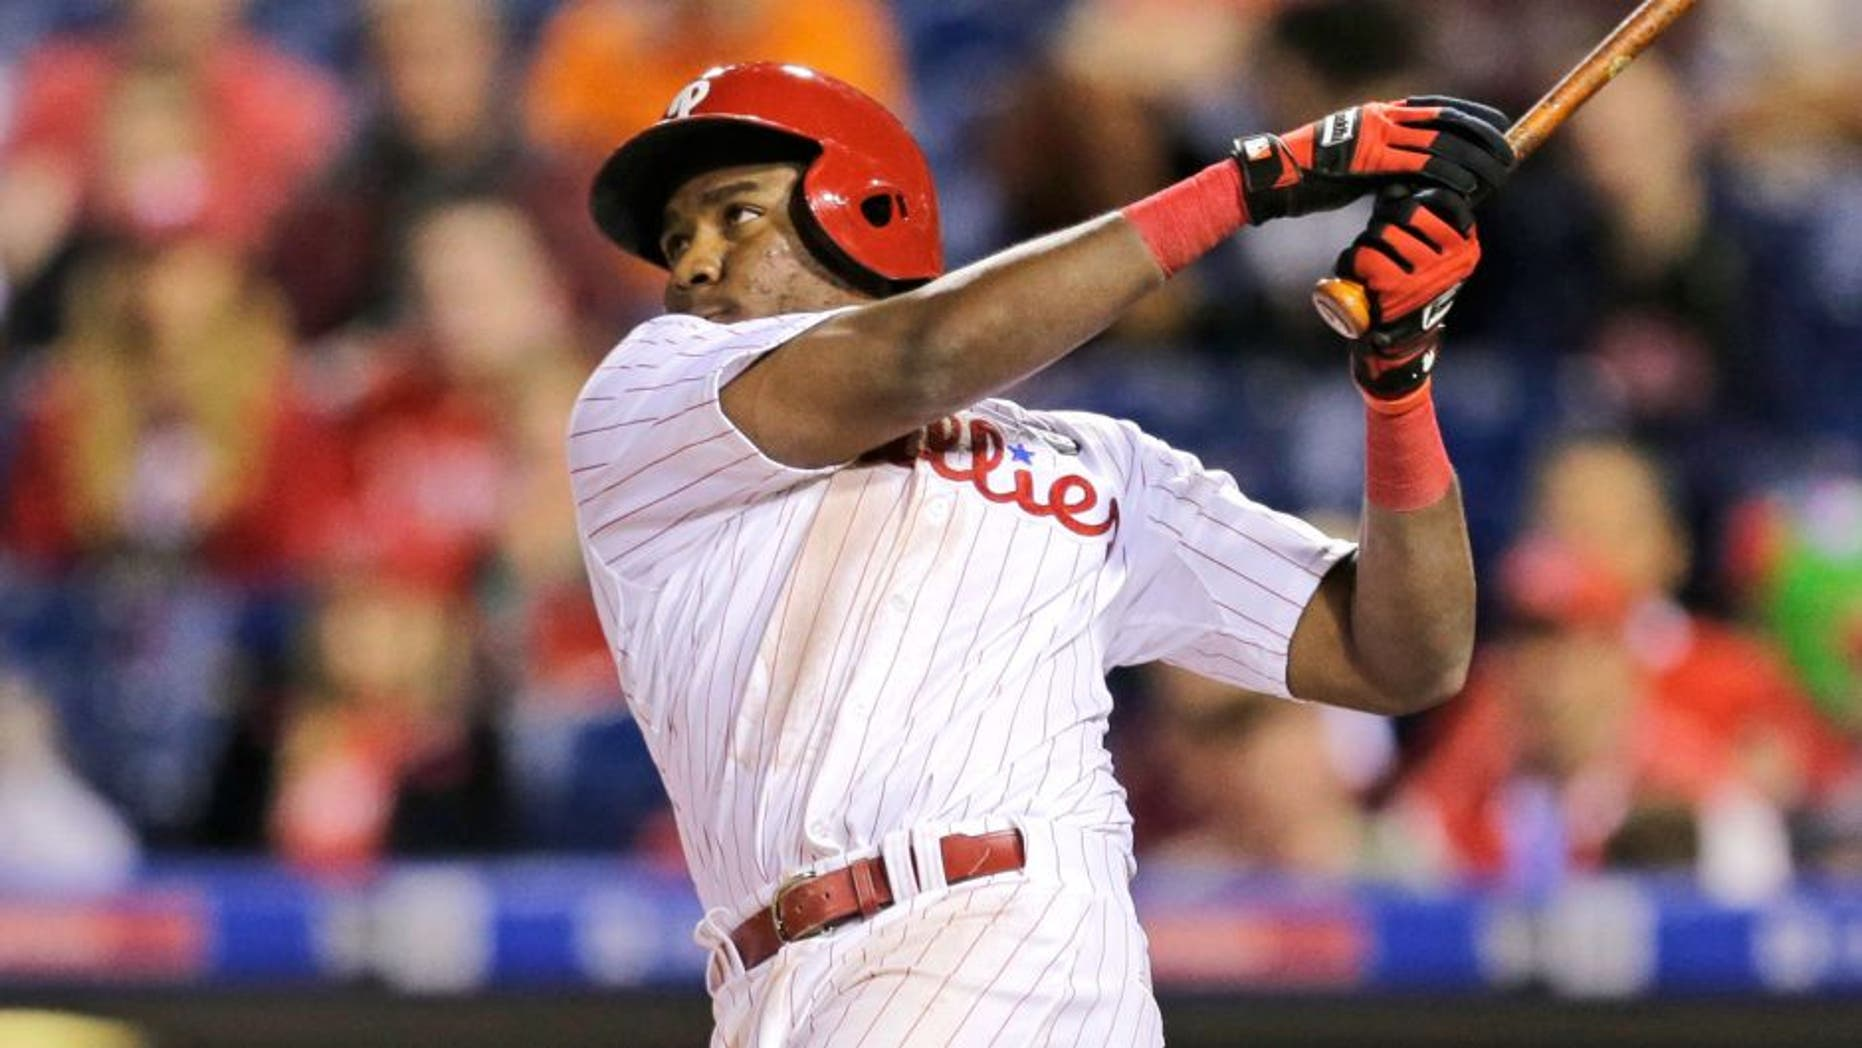 PHILADELPHIA - JUNE 3: Maikel Franco #7 of the Philadelphia Phillies hits a game tying three-run home run in the ninth inning during a game against the Cincinnati Reds at Citizens Bank Park on June 3, 2015 in Philadelphia, Pennsylvania. The Phillies won 5-4 in 11 innings. (Photo by Hunter Martin/Getty Images)